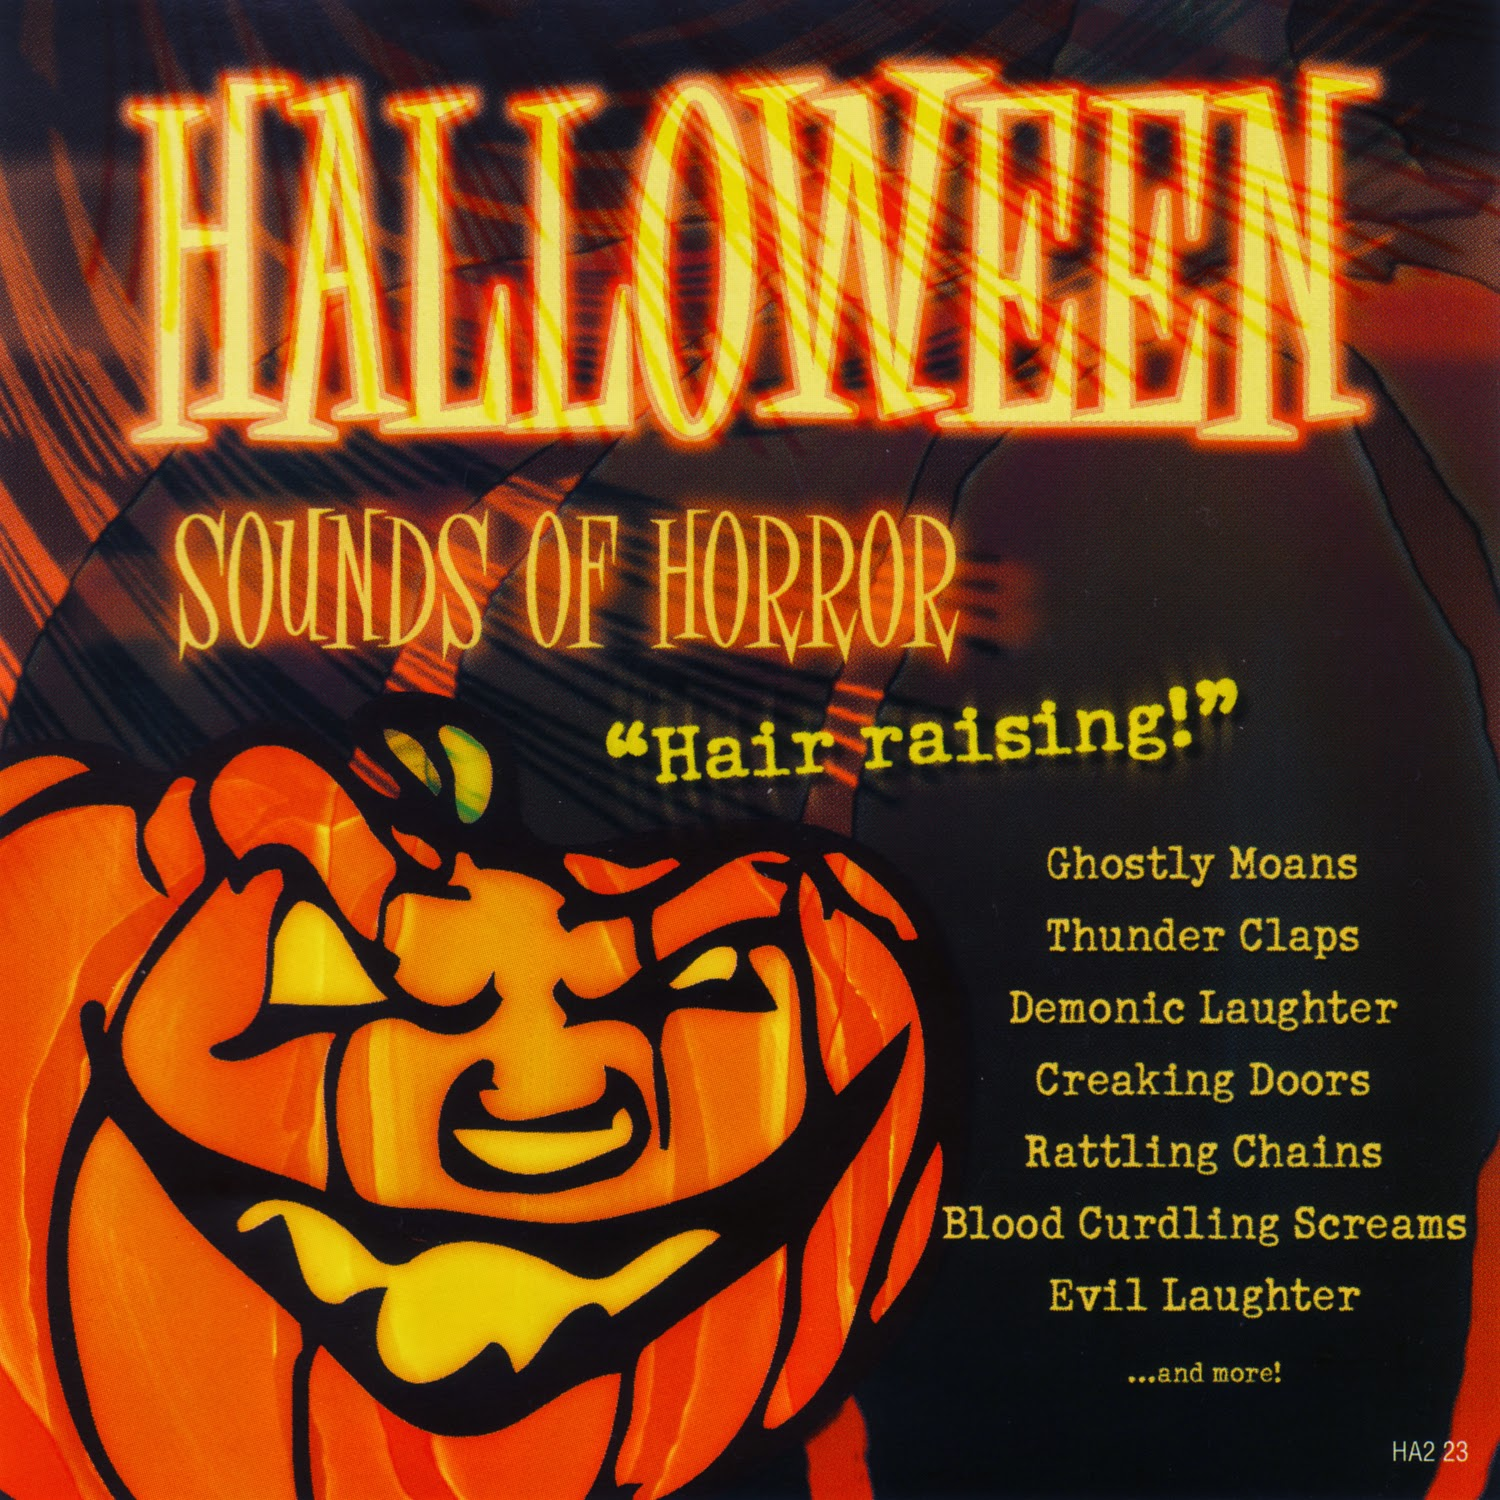 sounds of horror scary music sound effects cd npw halloween horror sound machine effects jokes pranks for adults andscary sounds from the haunted house